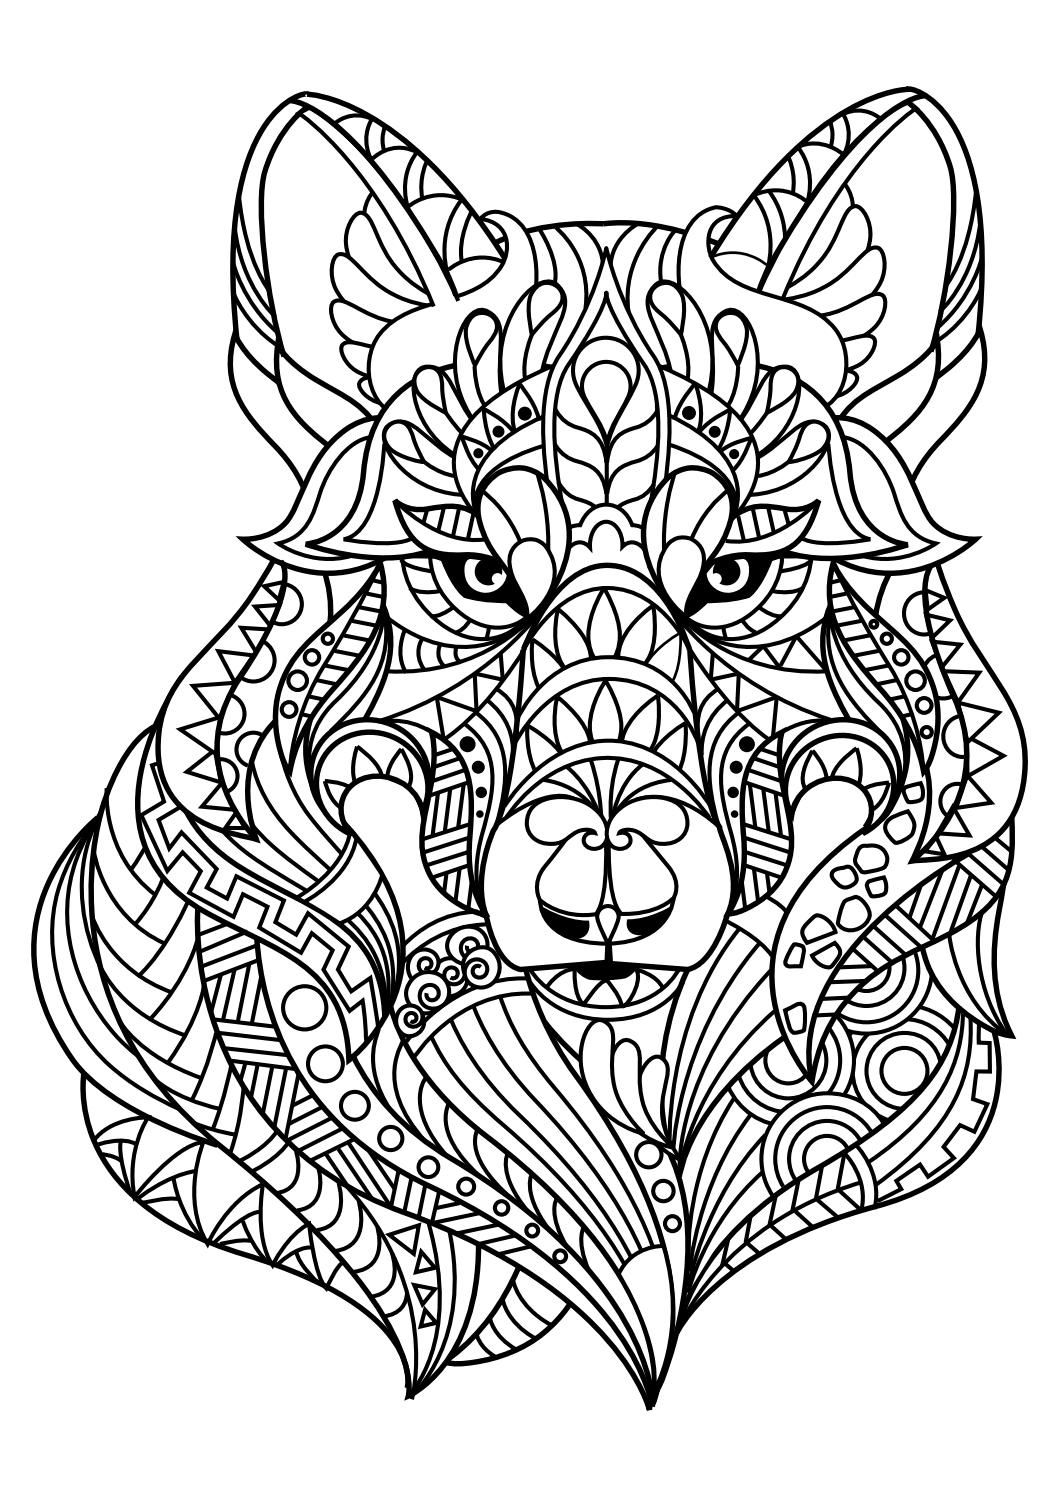 Animal Coloring Pages Pdf Animal Coloring Books Dog Coloring